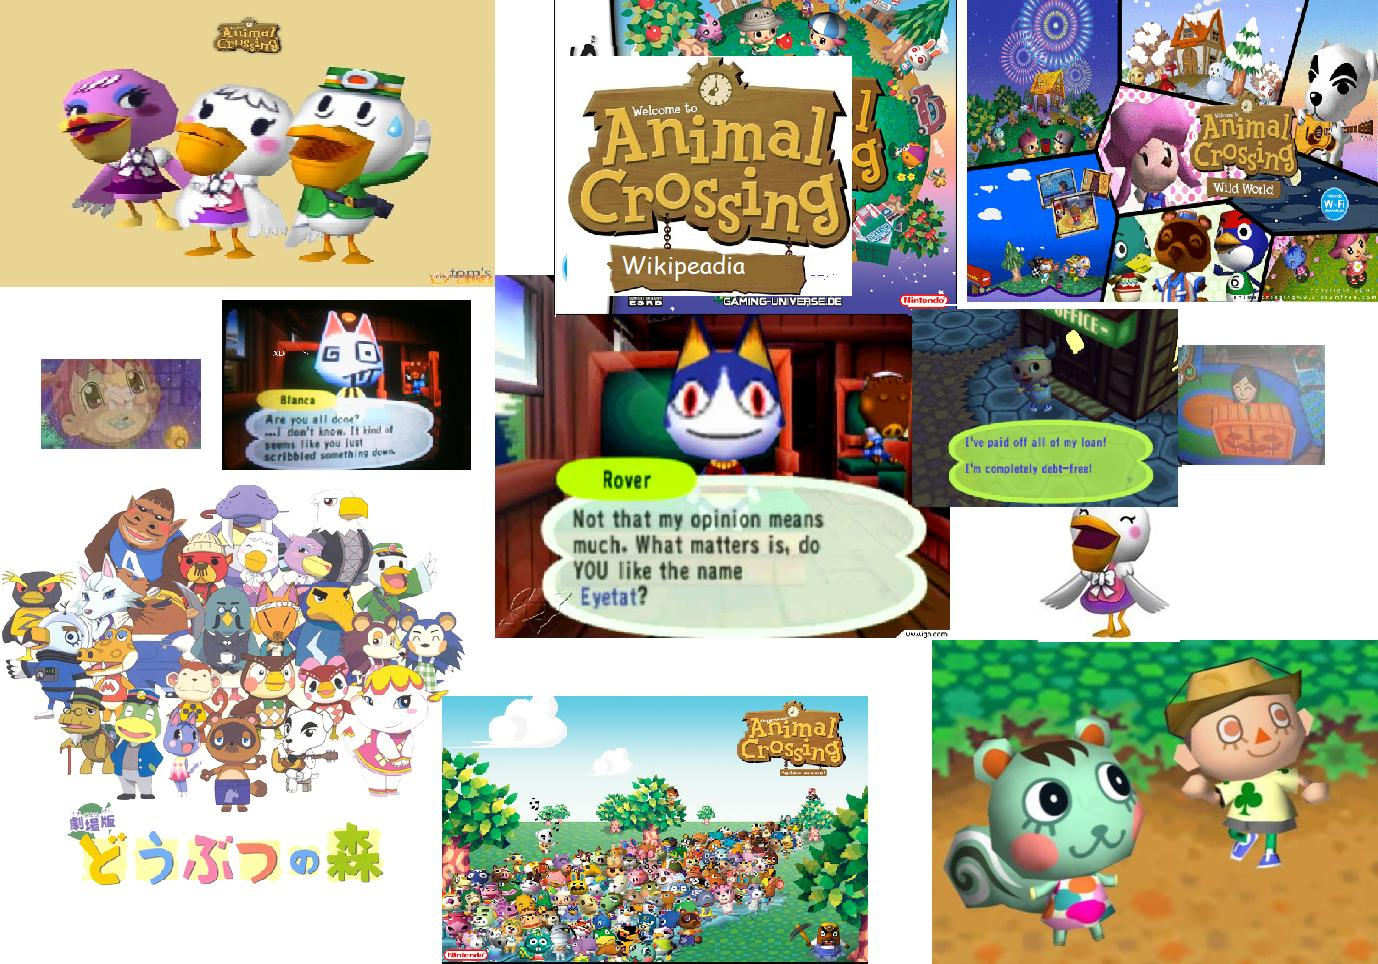 Animal Crossing Wikipeada Wiki Navigation